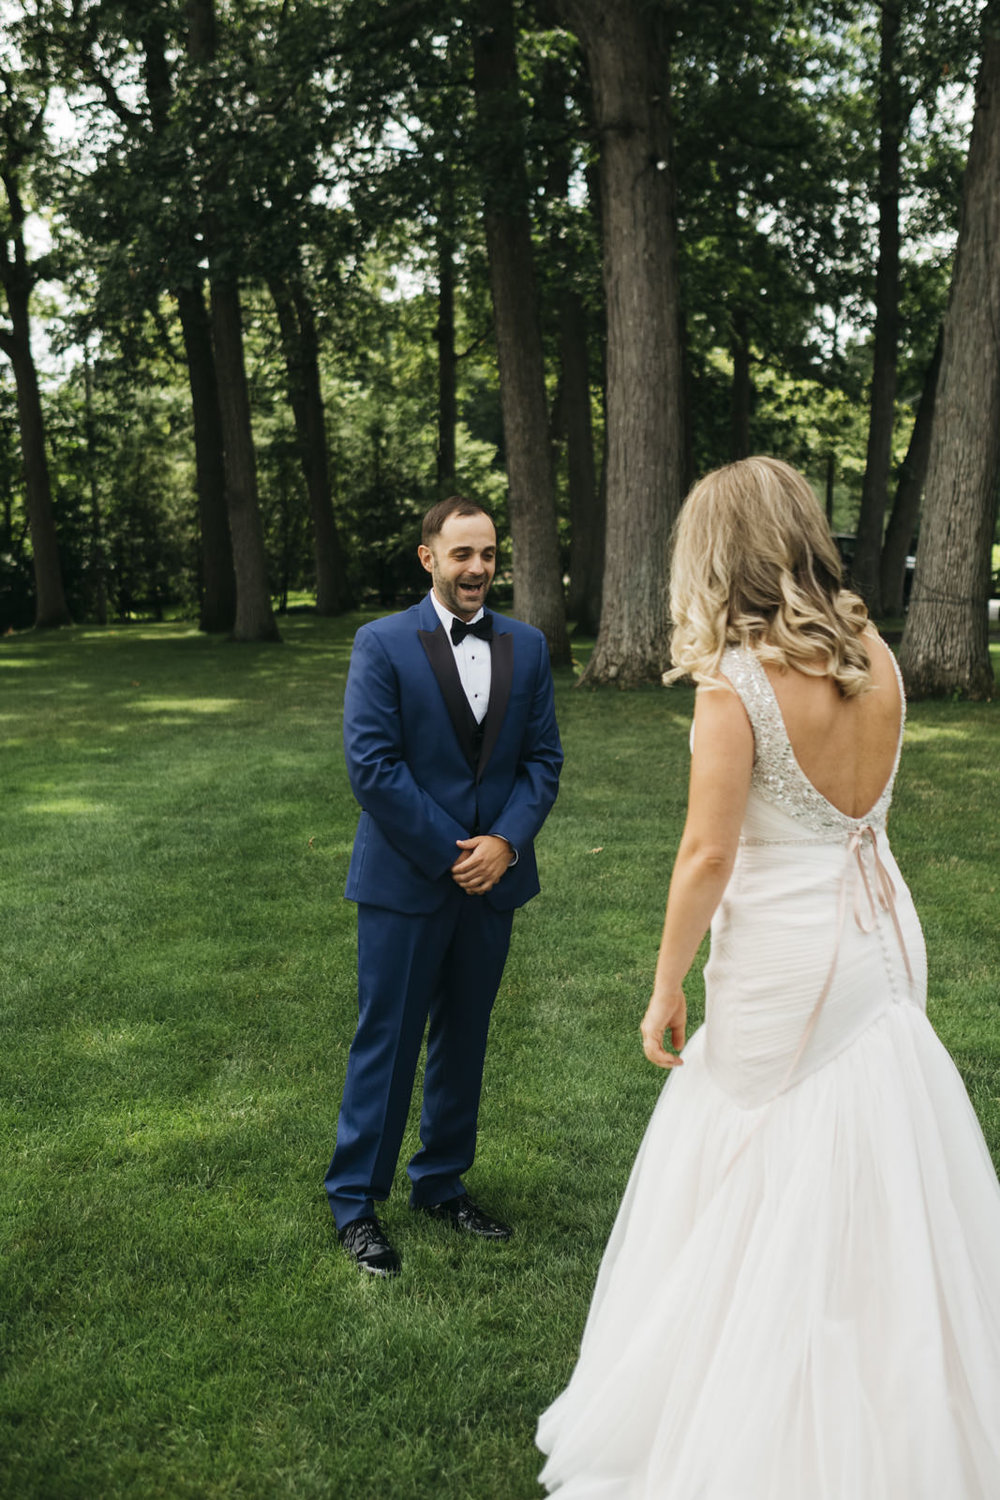 A surprised groom sees his bride for the first time before their wedding ceremony.